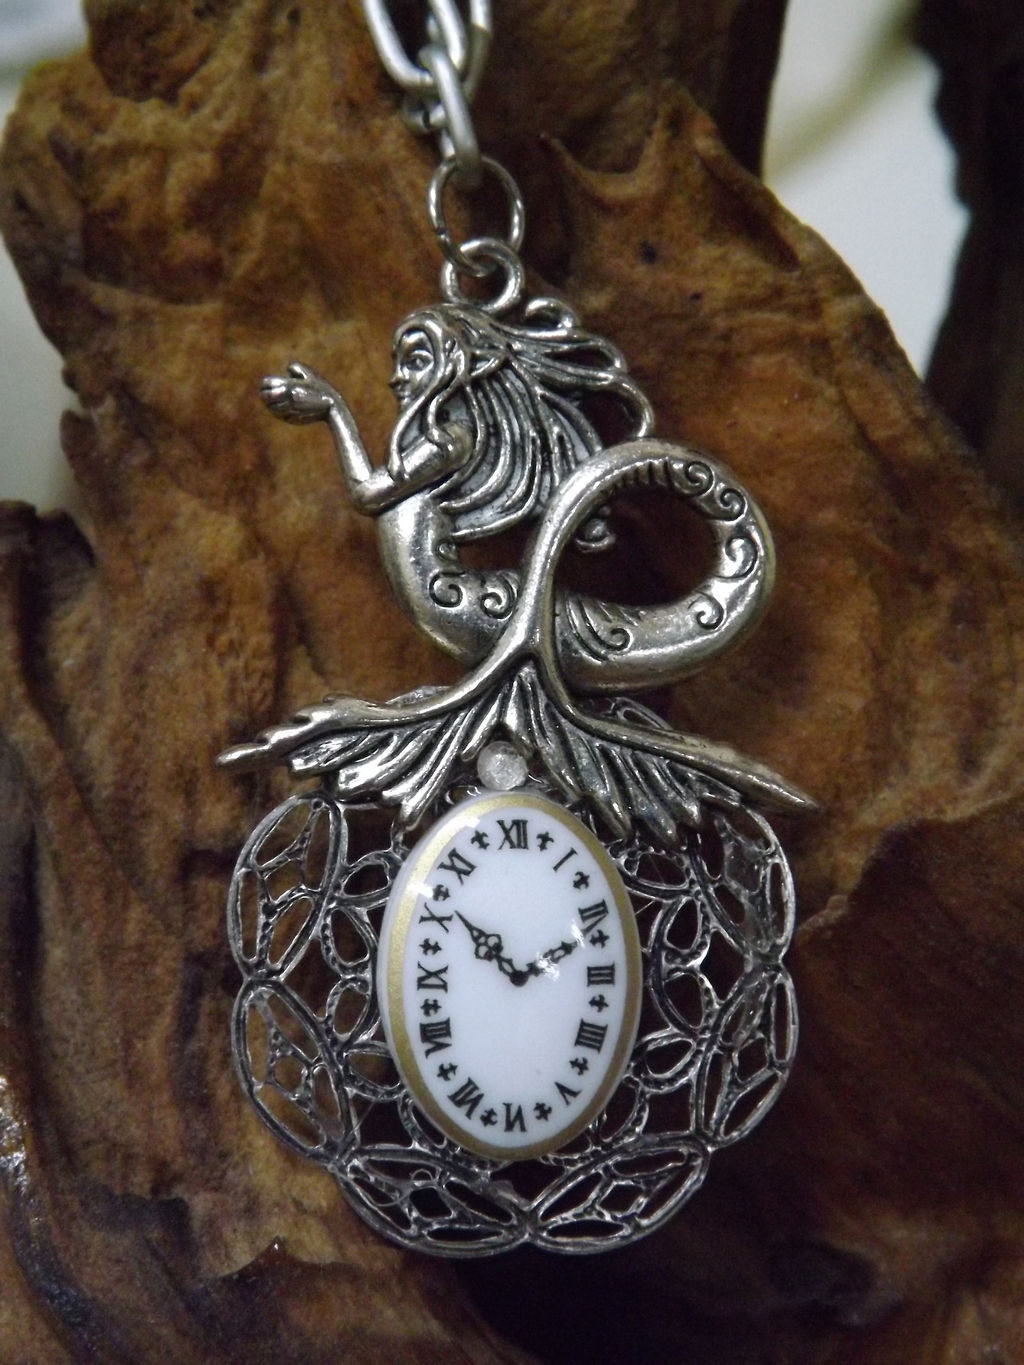 Black Cat Designs Recycled Jewelry Art Steampunk Victorian Vintage Tattoo Gothic Unique Punk